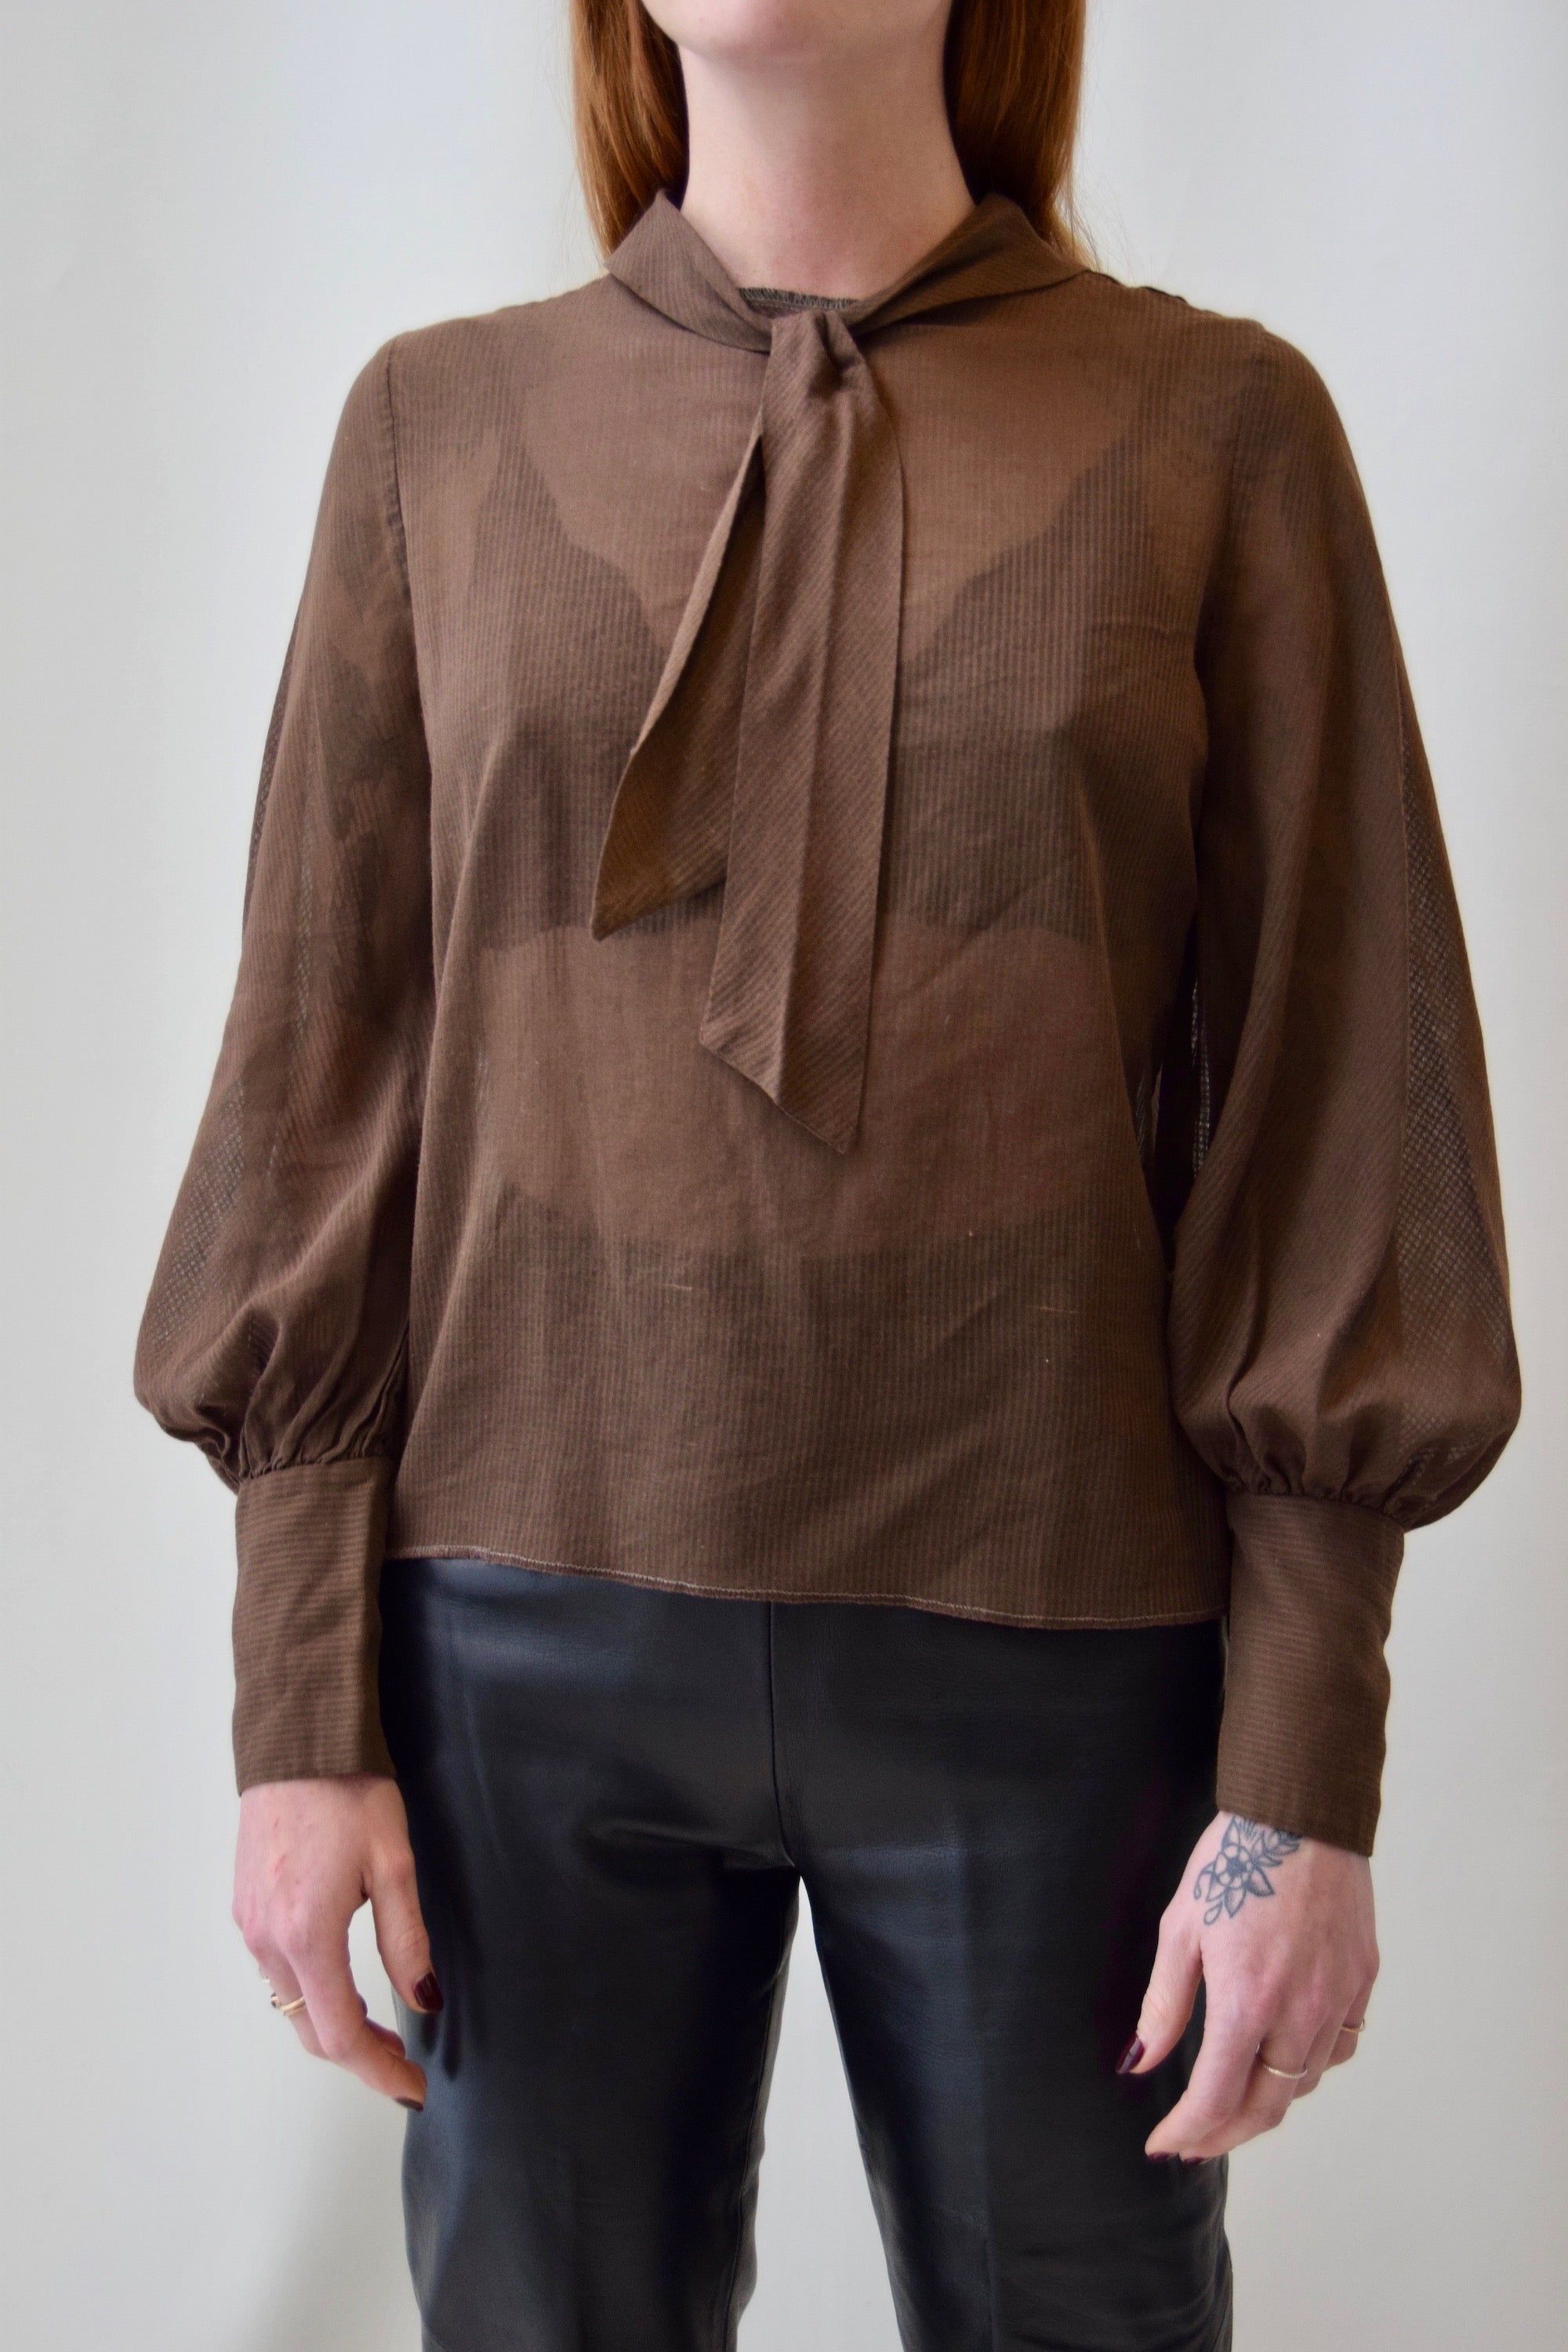 1960's Sheer Brown Striped Blouse